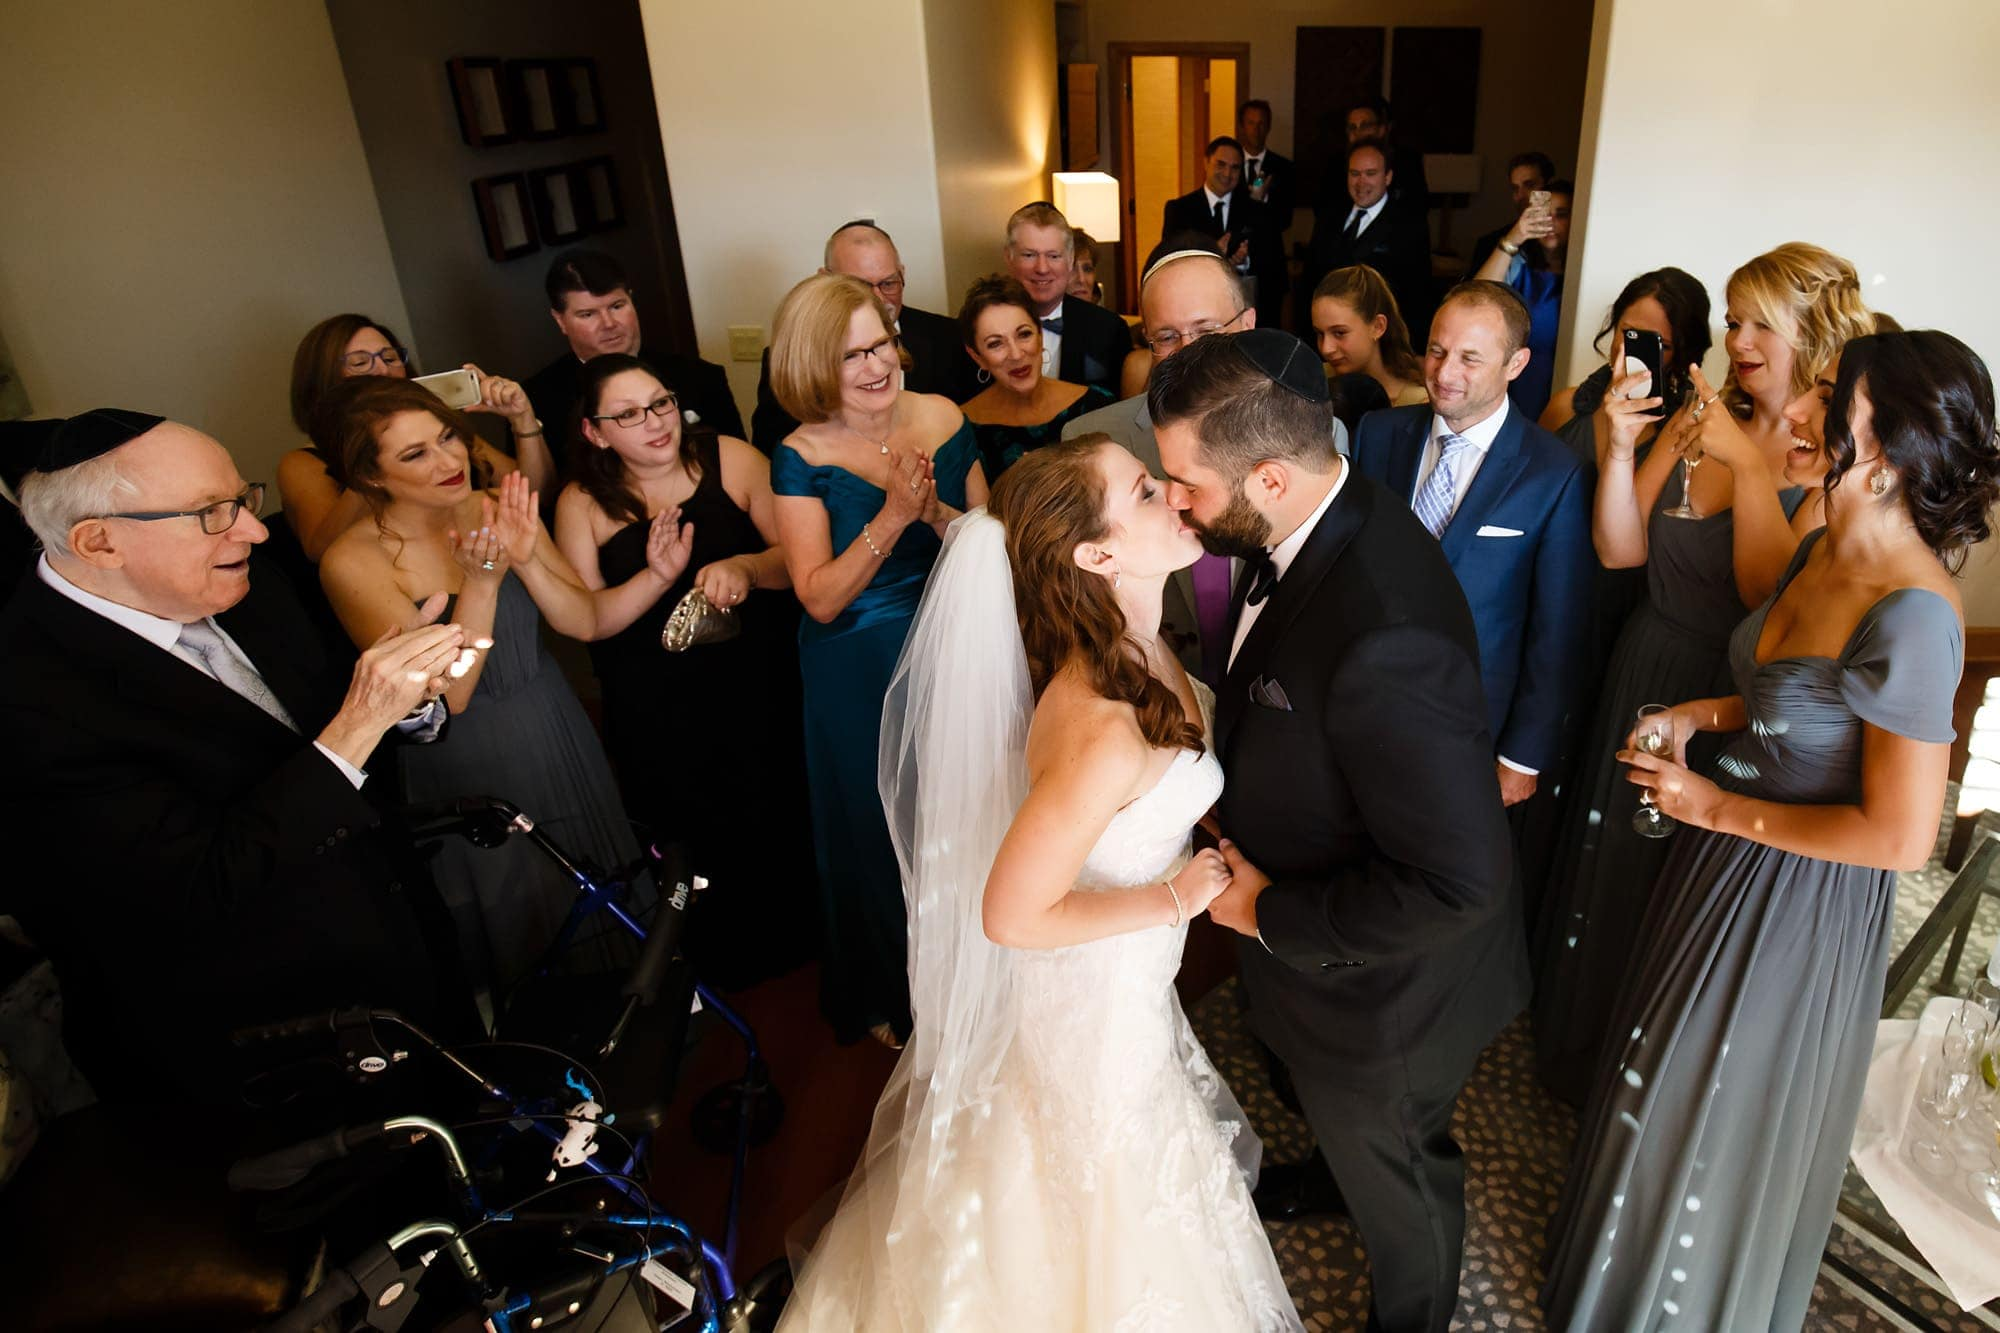 The Jewish couple shares a first kiss in Colorado Springs